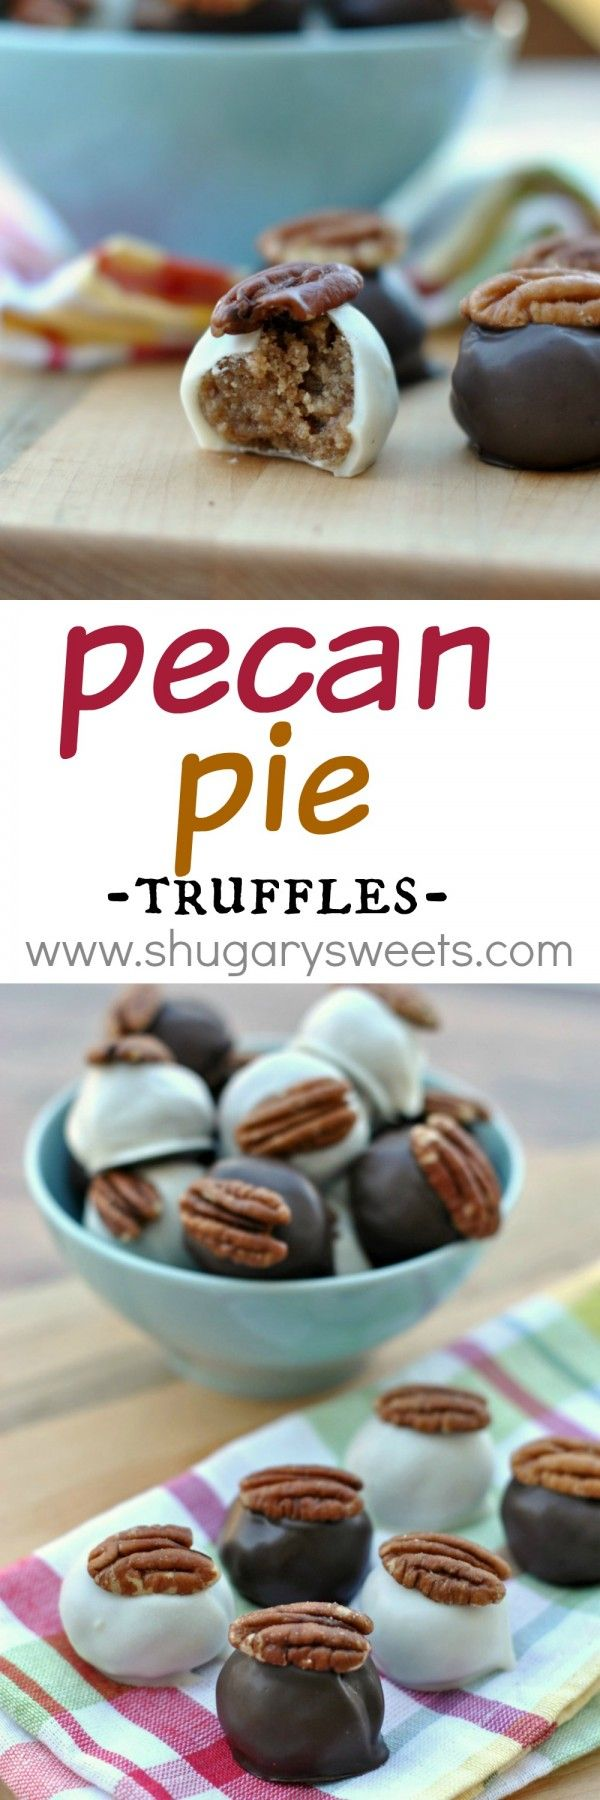 Pecan Pie Truffles: delicious bites of pecan pie in a chocolate truffle coating!